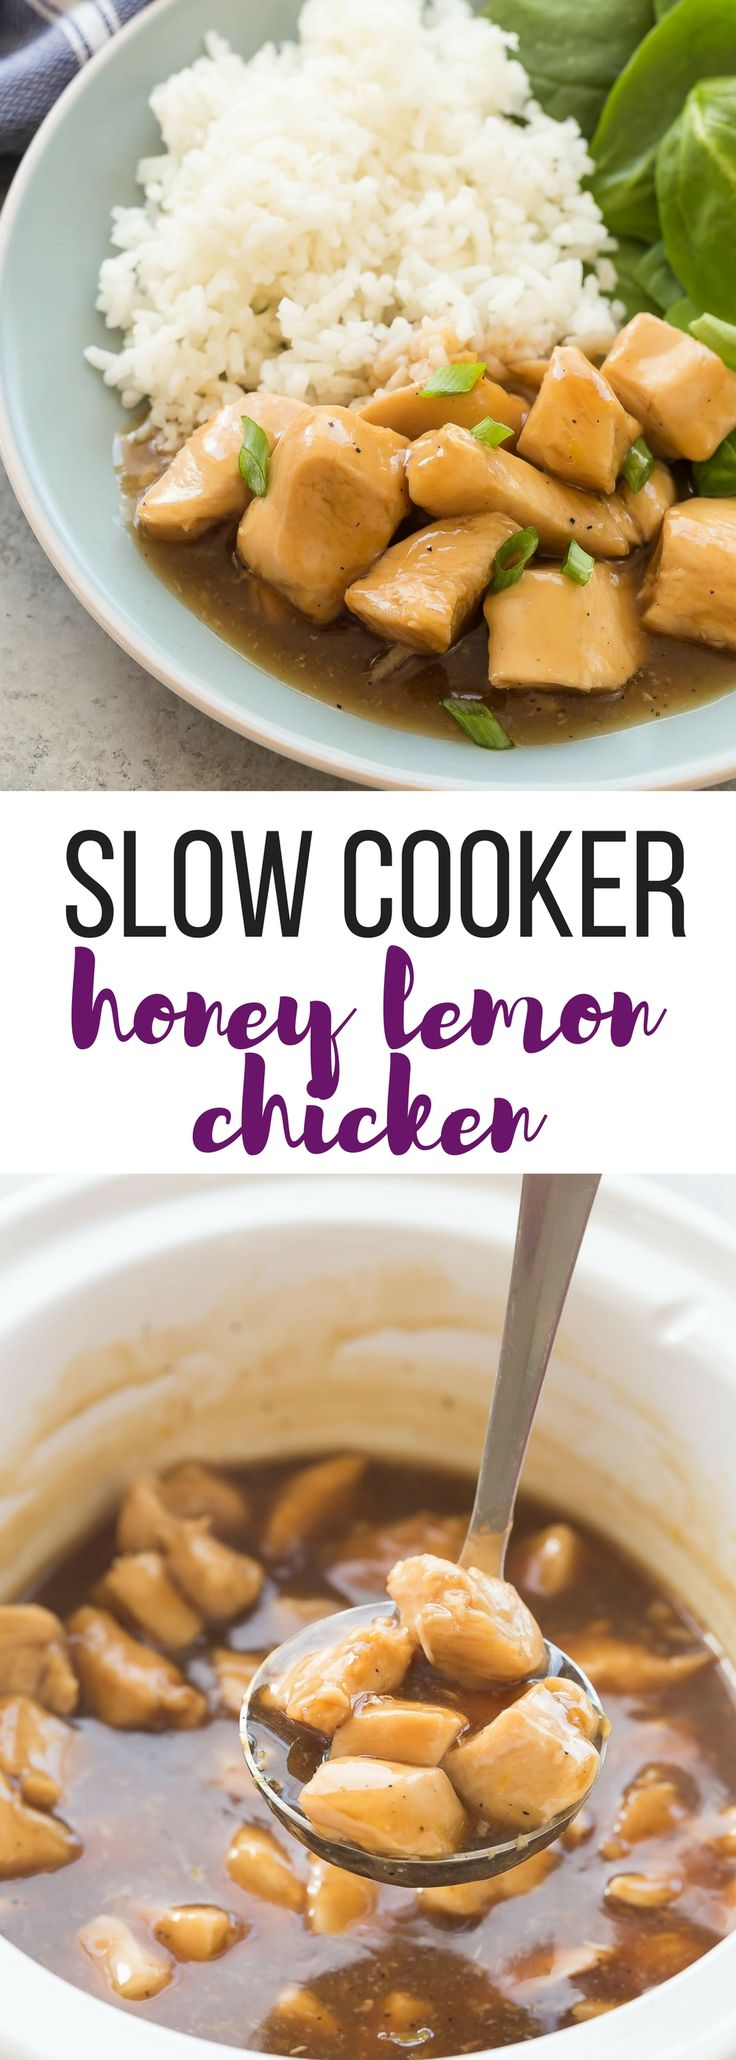 This Slow Cooker Honey Lemon Chicken is a little sweet, a little tangy and perfect over rice or noodles! It's an easy crockpot meal for those busy days! Includes step by step recipe video.   crockpot dinner   crockpot recipe   crock pot   slow cooker recipe   easy dinner   healthy dinner   low calorie   healthy diet #slowcooker #crockpot #chickenrecipe